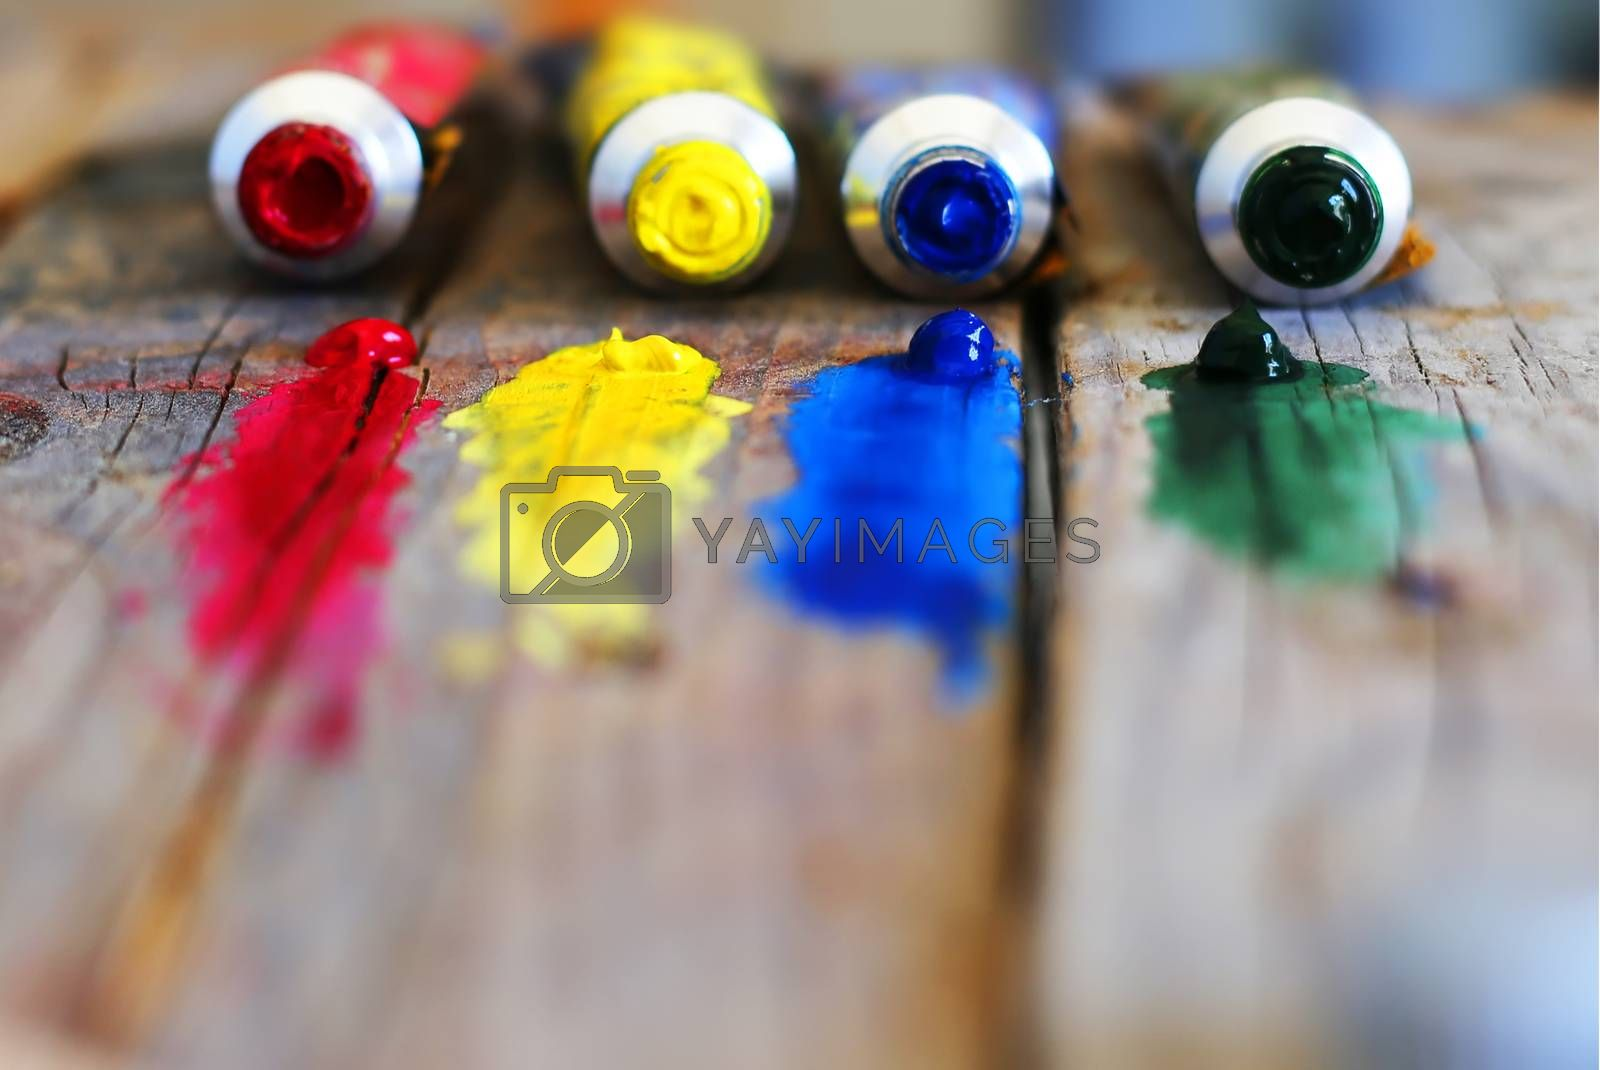 Photo of  4 paint tubes: red, yellow, blue and green